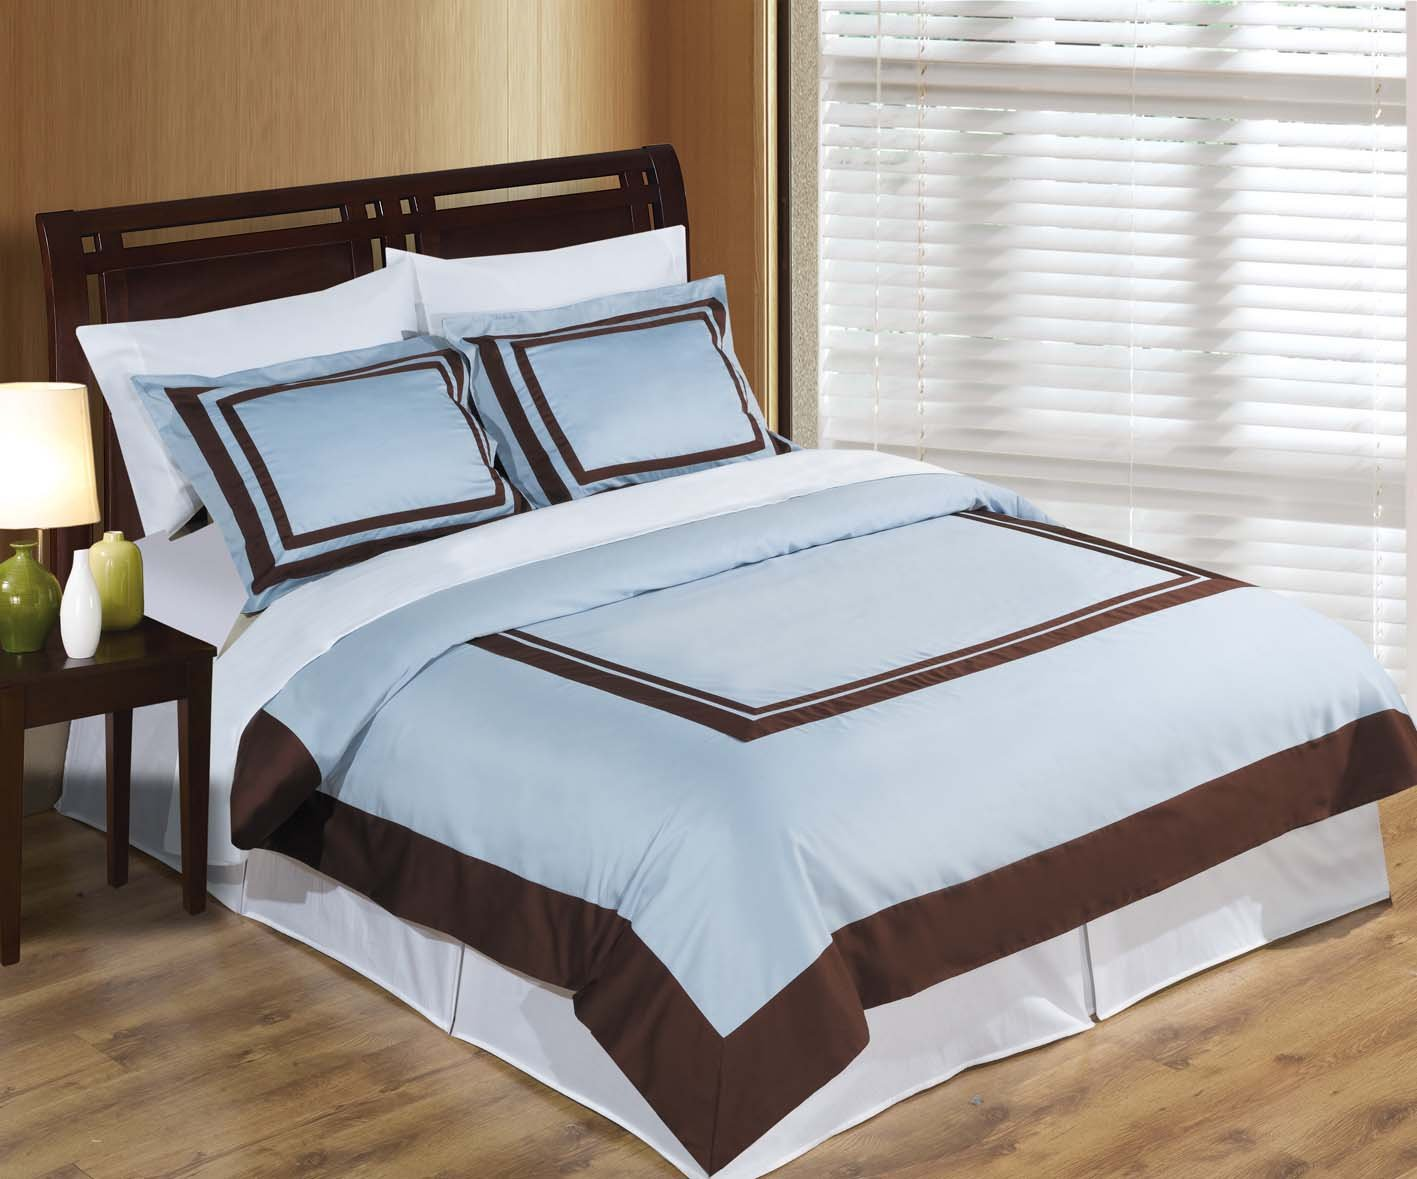 sheetsnthings 4PC Full/Queen size Blue with Chocolate Hotel bedding set including 3pc duvet cover set+ 1 pc Down Alternative Comforter at Sears.com